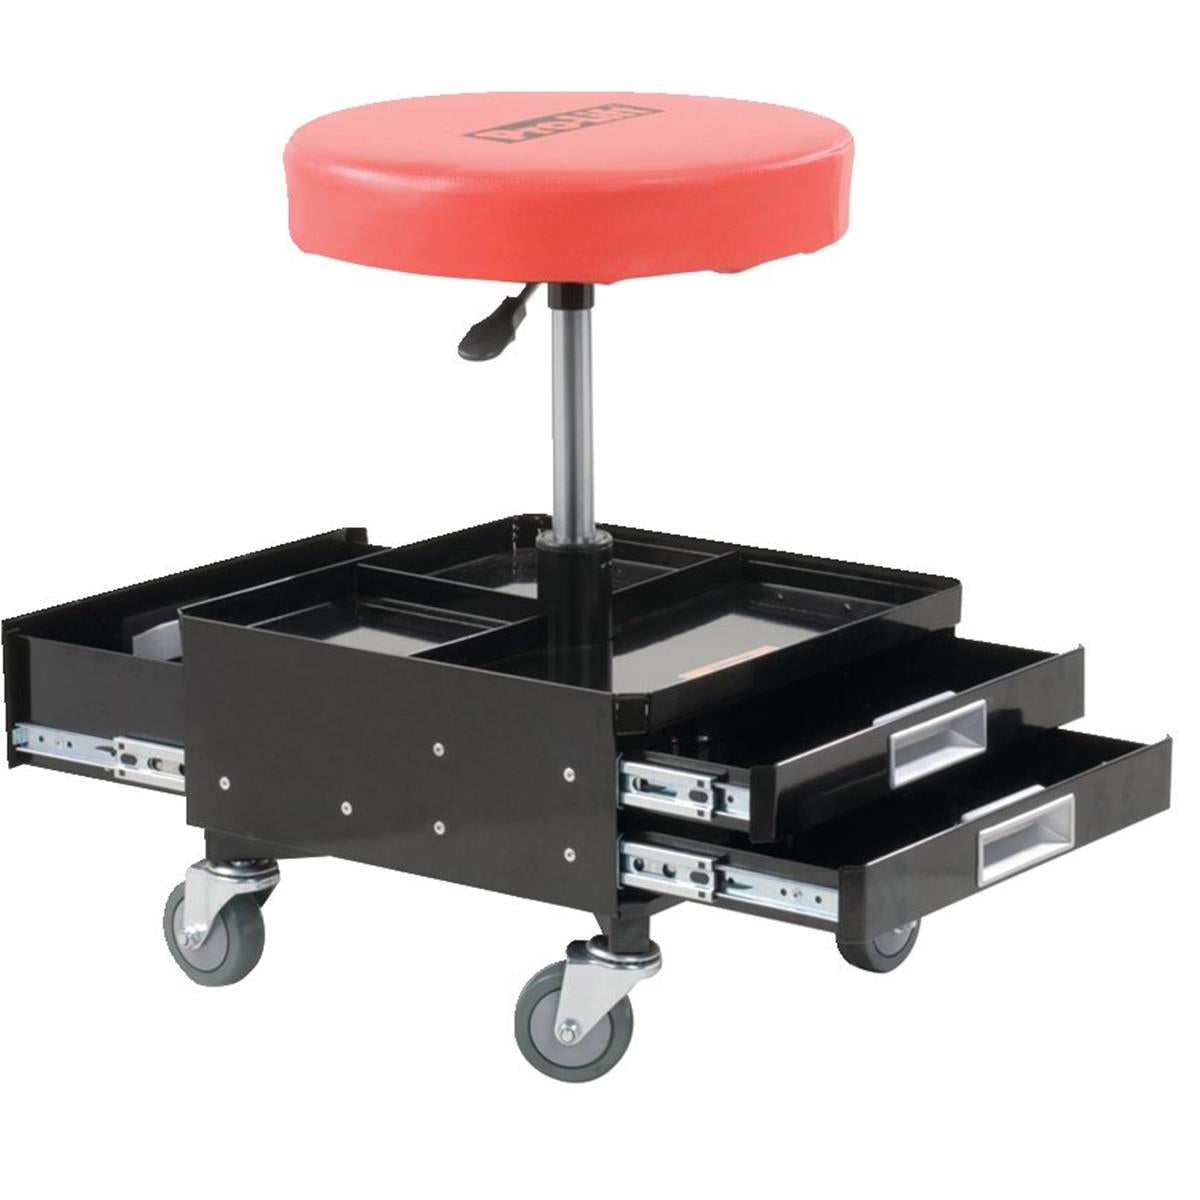 Pro-Lift® Pneumatic Shop Seat with Tool Trays